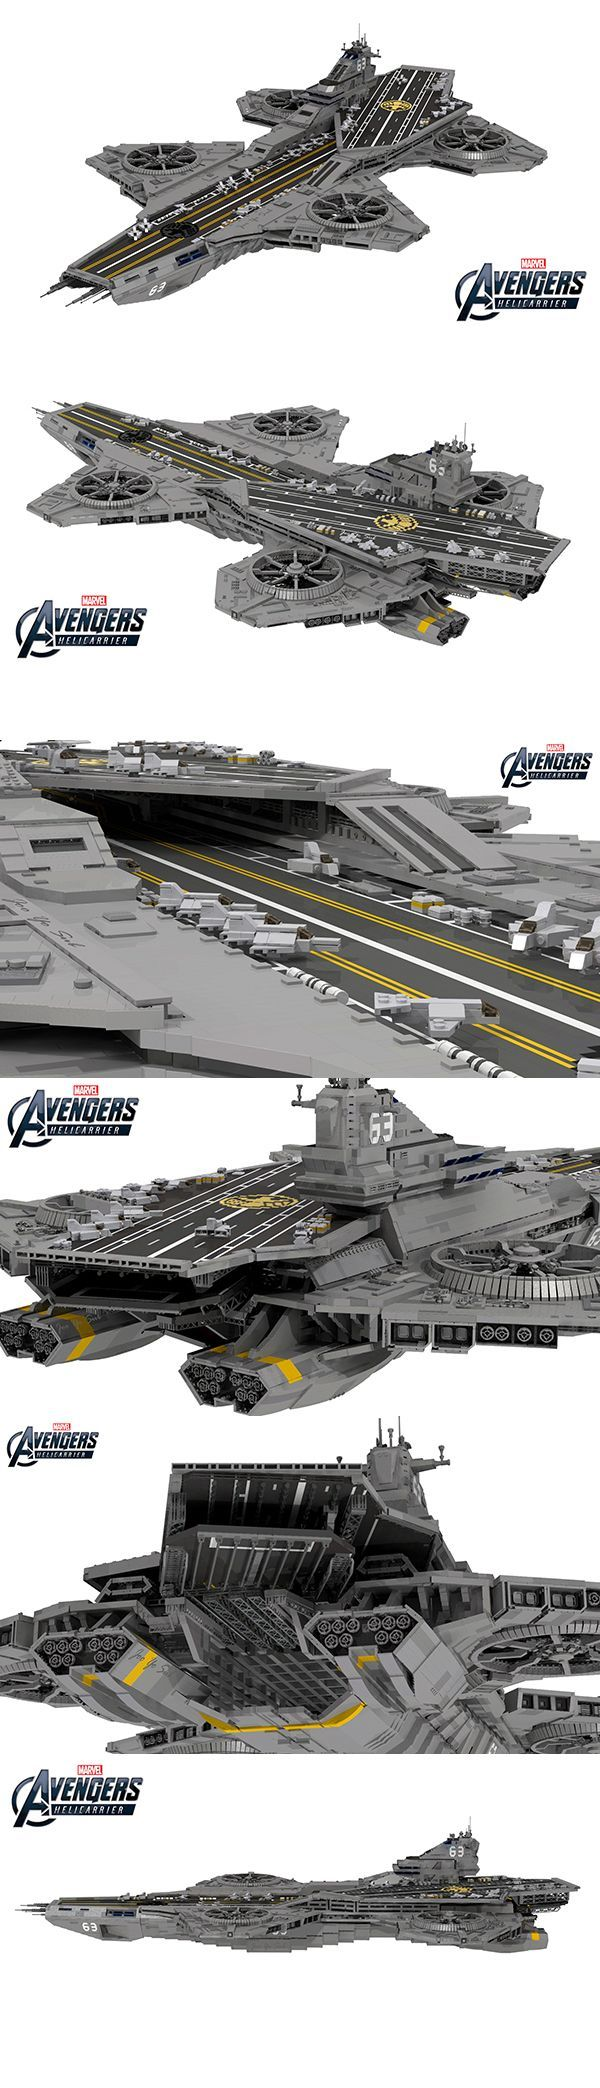 The helicarrier from The Avengers is made to be built from LEGO bricks, and LEGO Ideas (formerly Cuusoo) user ysomt came up with a design that uses 22,694 of them. Isn't it a thing of beauty? He reviewed stills from the film and did his best to make the helicarrier screen accurate and get the proportions just right. It measures 85.4 by 45.3 inches so you'd need to clear a big space to build and display it.: